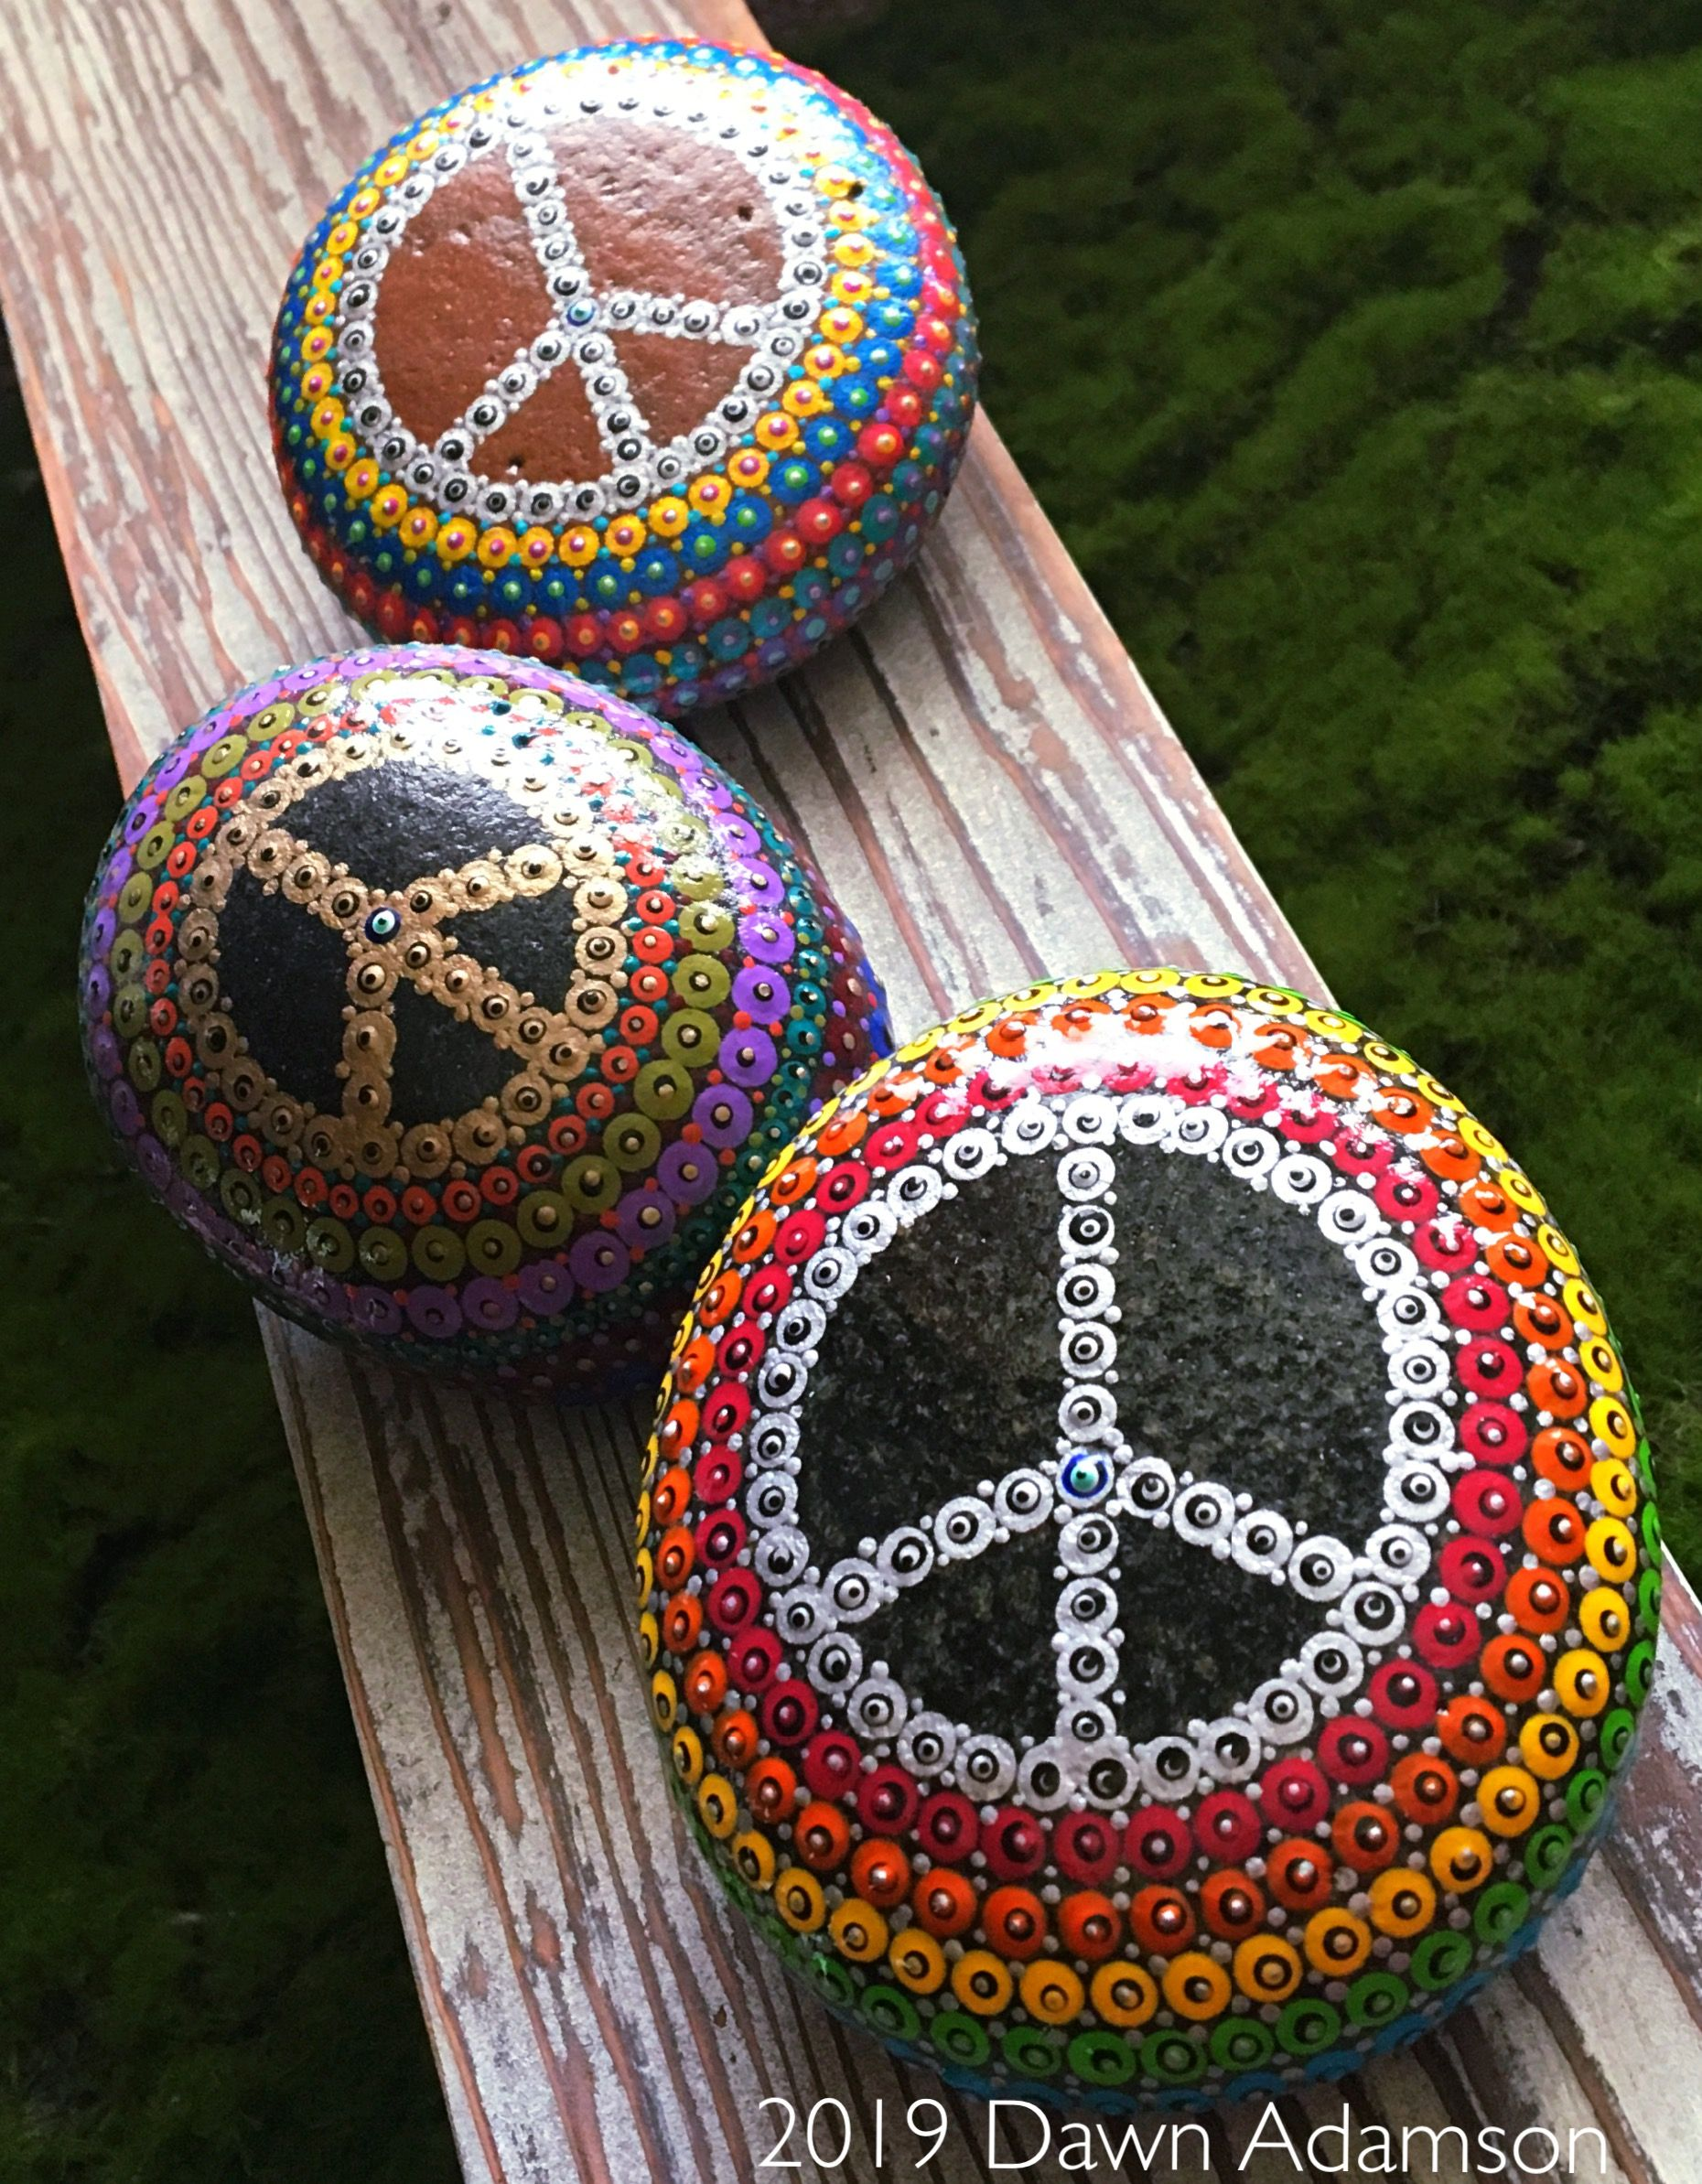 47+ Hand painted rocks crafts ideas in 2021